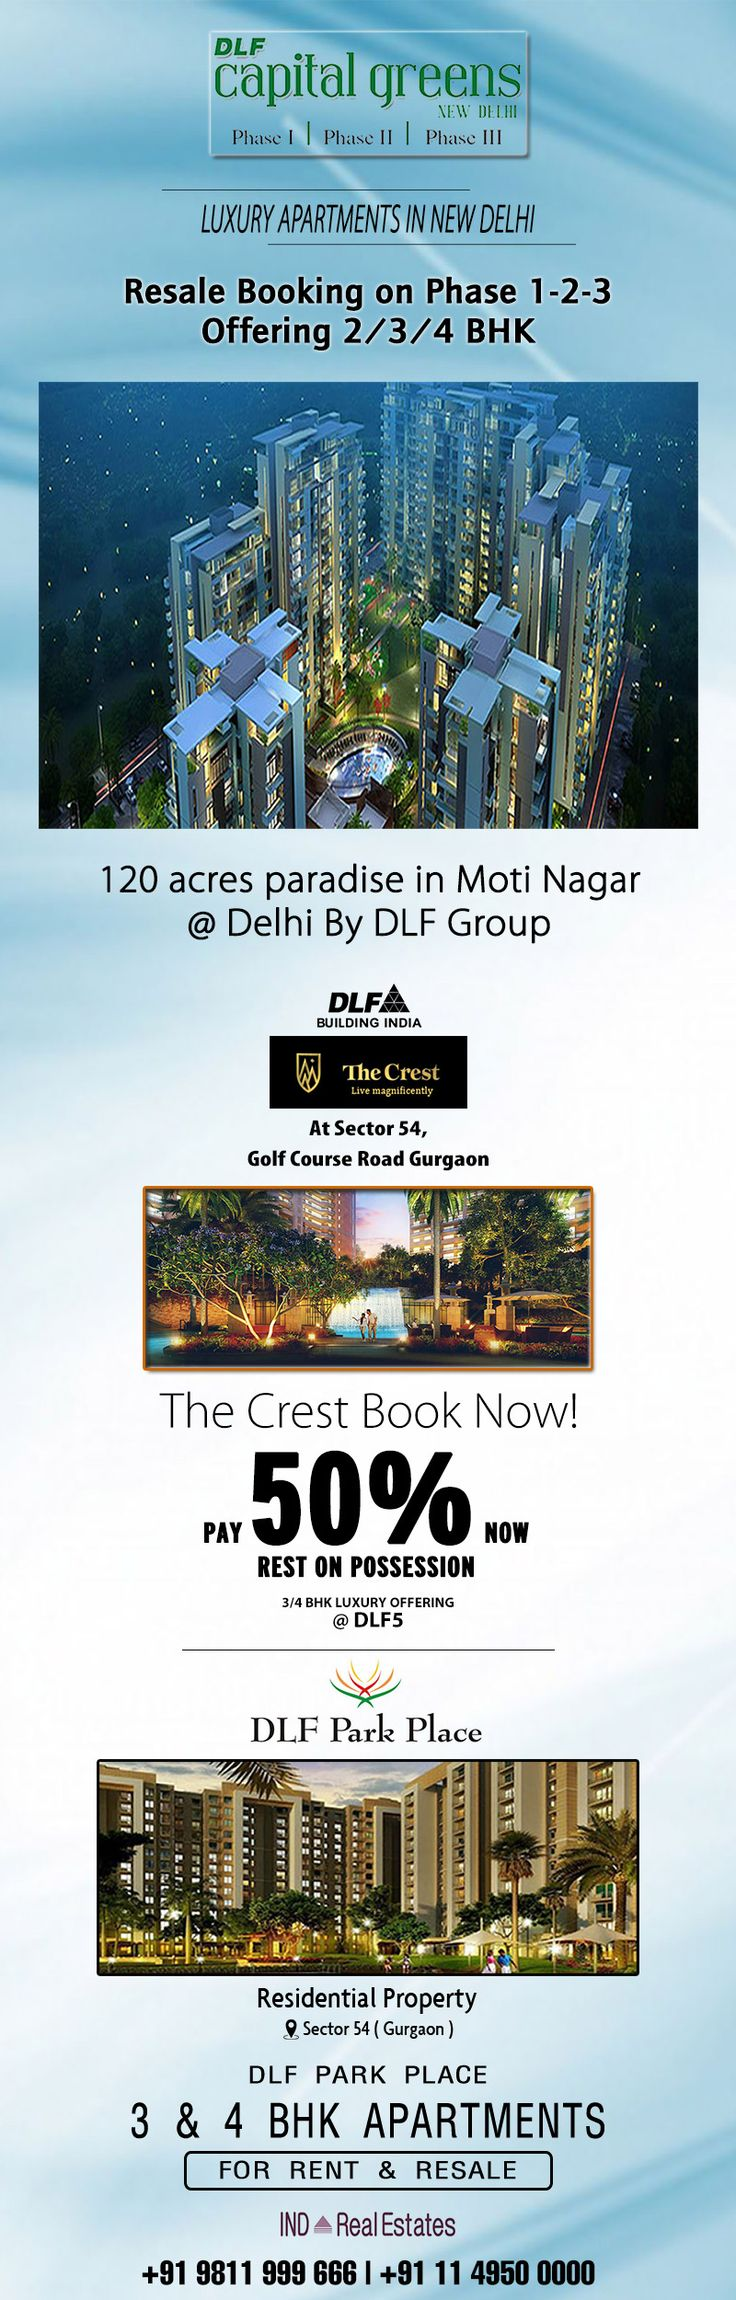 Dlf ltd the opulent builder of indian real estate gives out of the box packages some of them are dlf capital greens moti nagar dlf park place sector 54